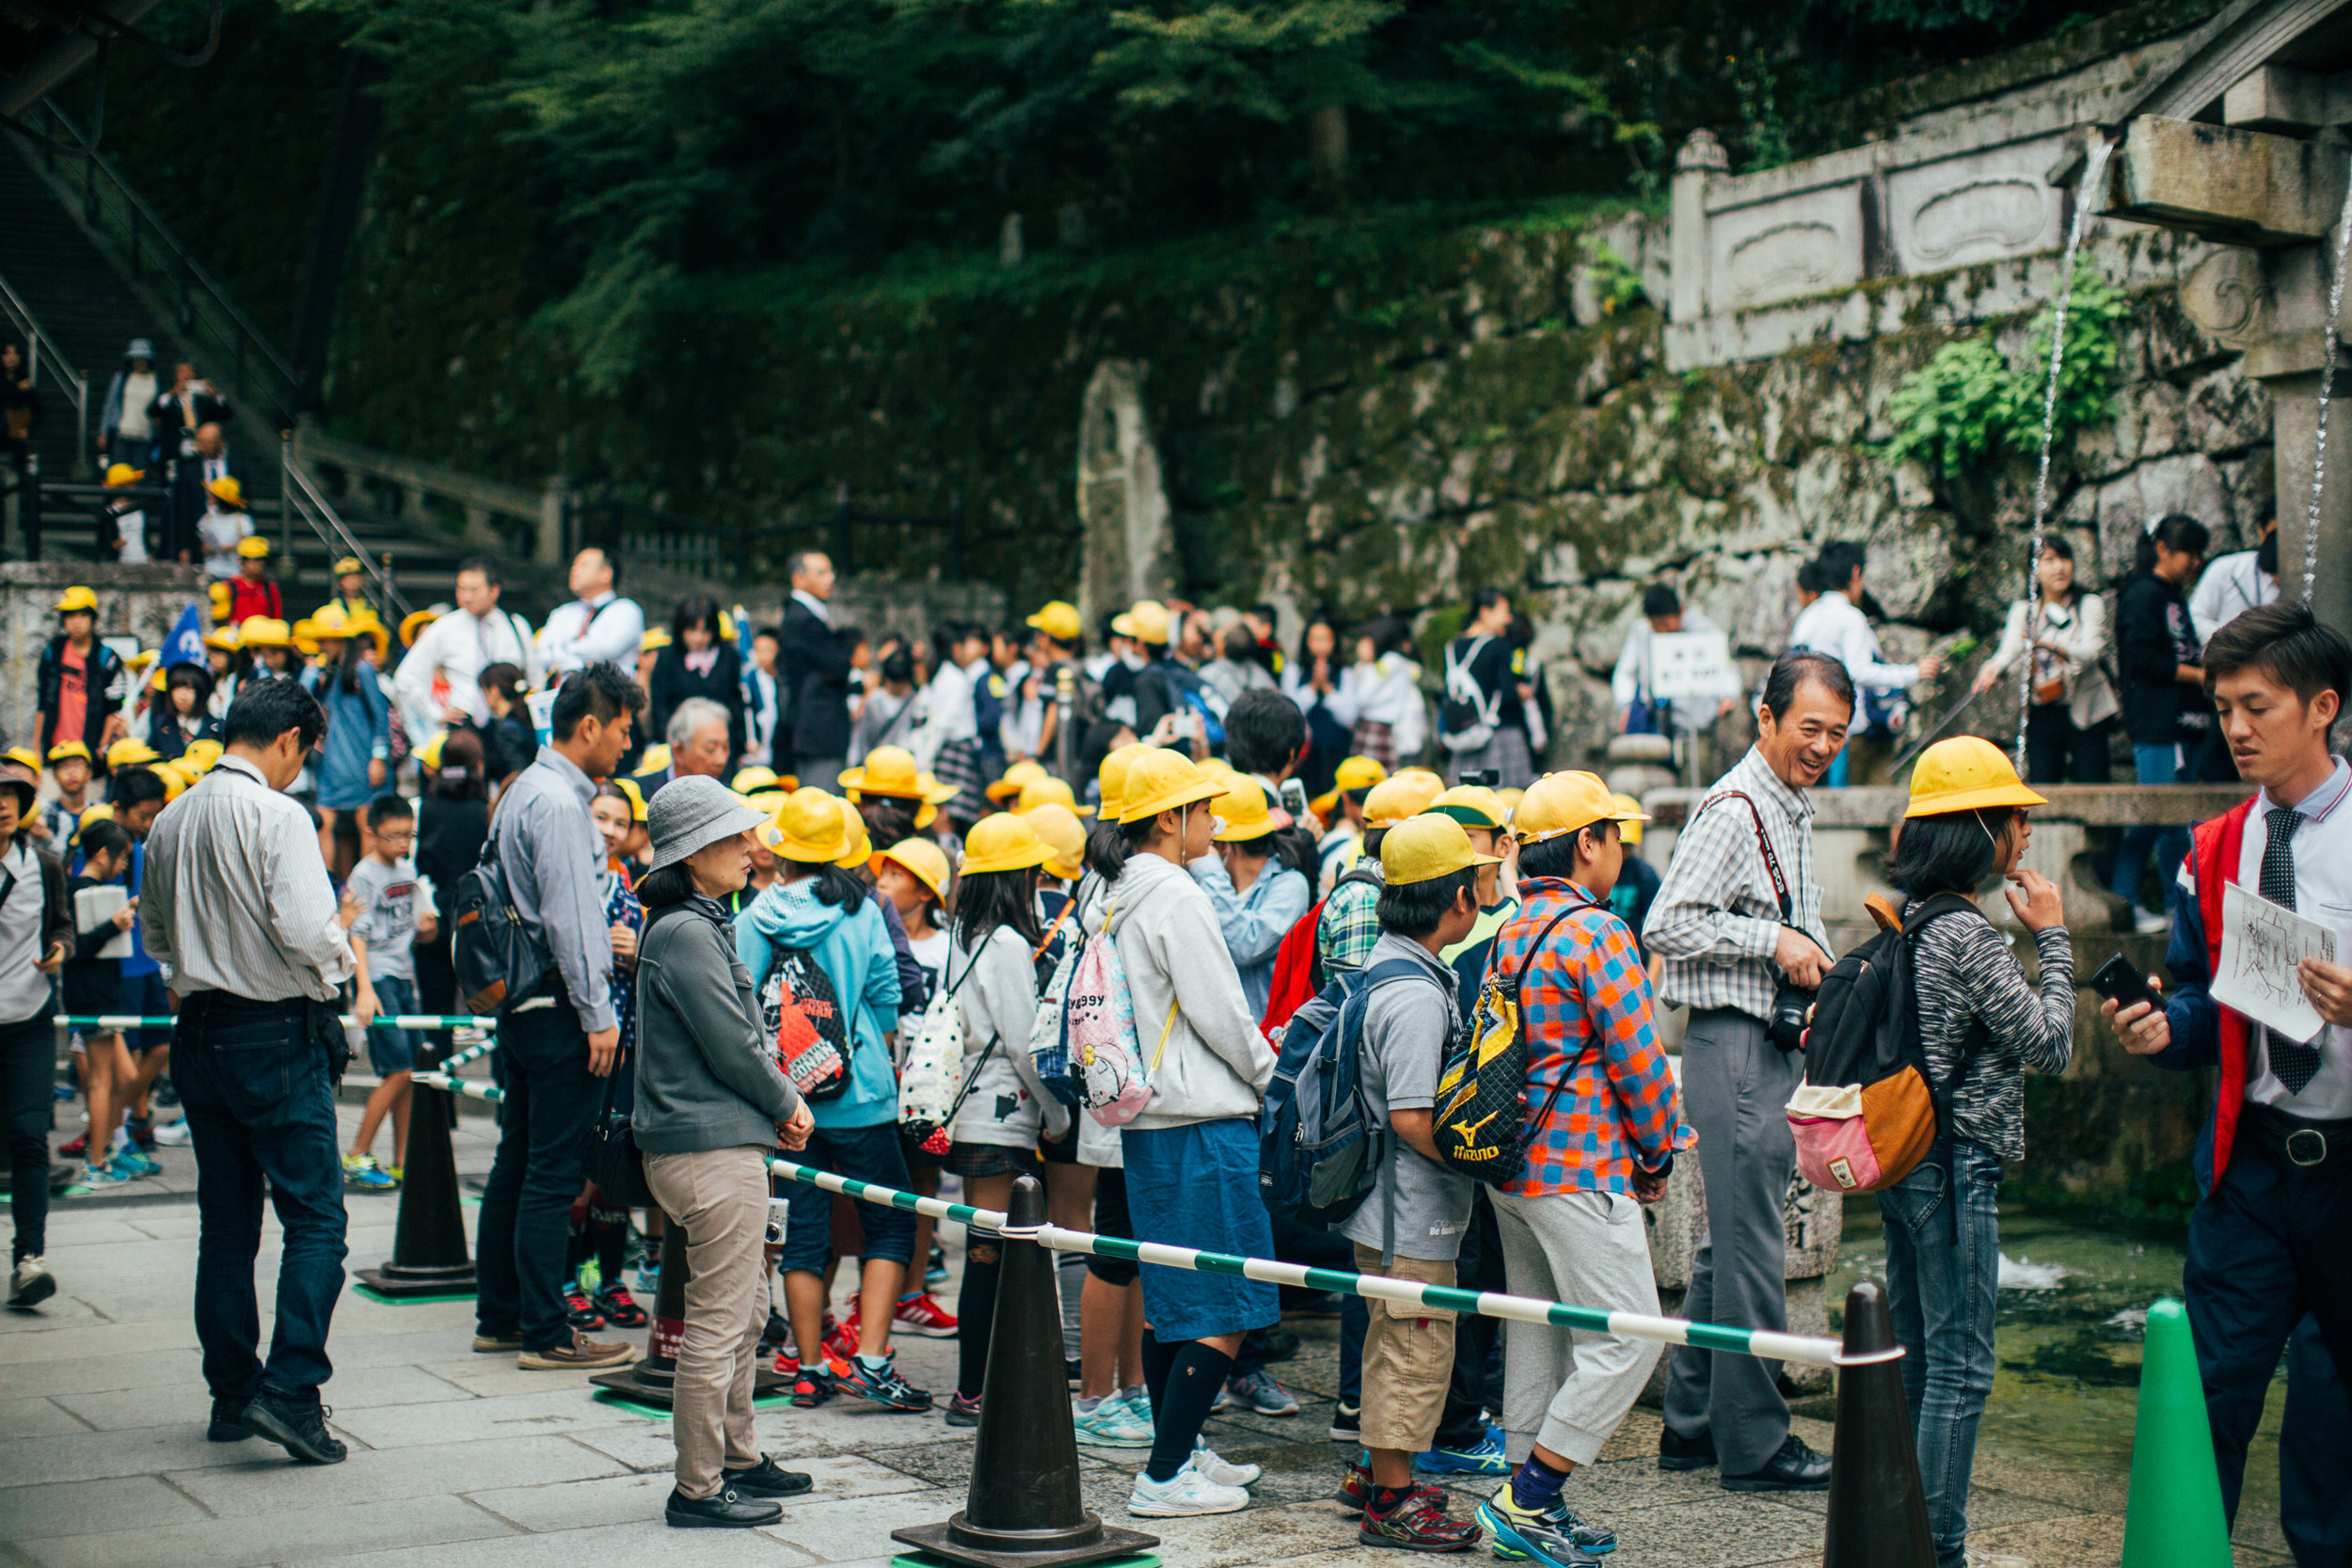 F#^K.   (Though seriously, it was pretty entertaining seeing these kids around the temple. There were literally dozens of queues but everything was pretty damn orderly. Not a surprise, I guess.)